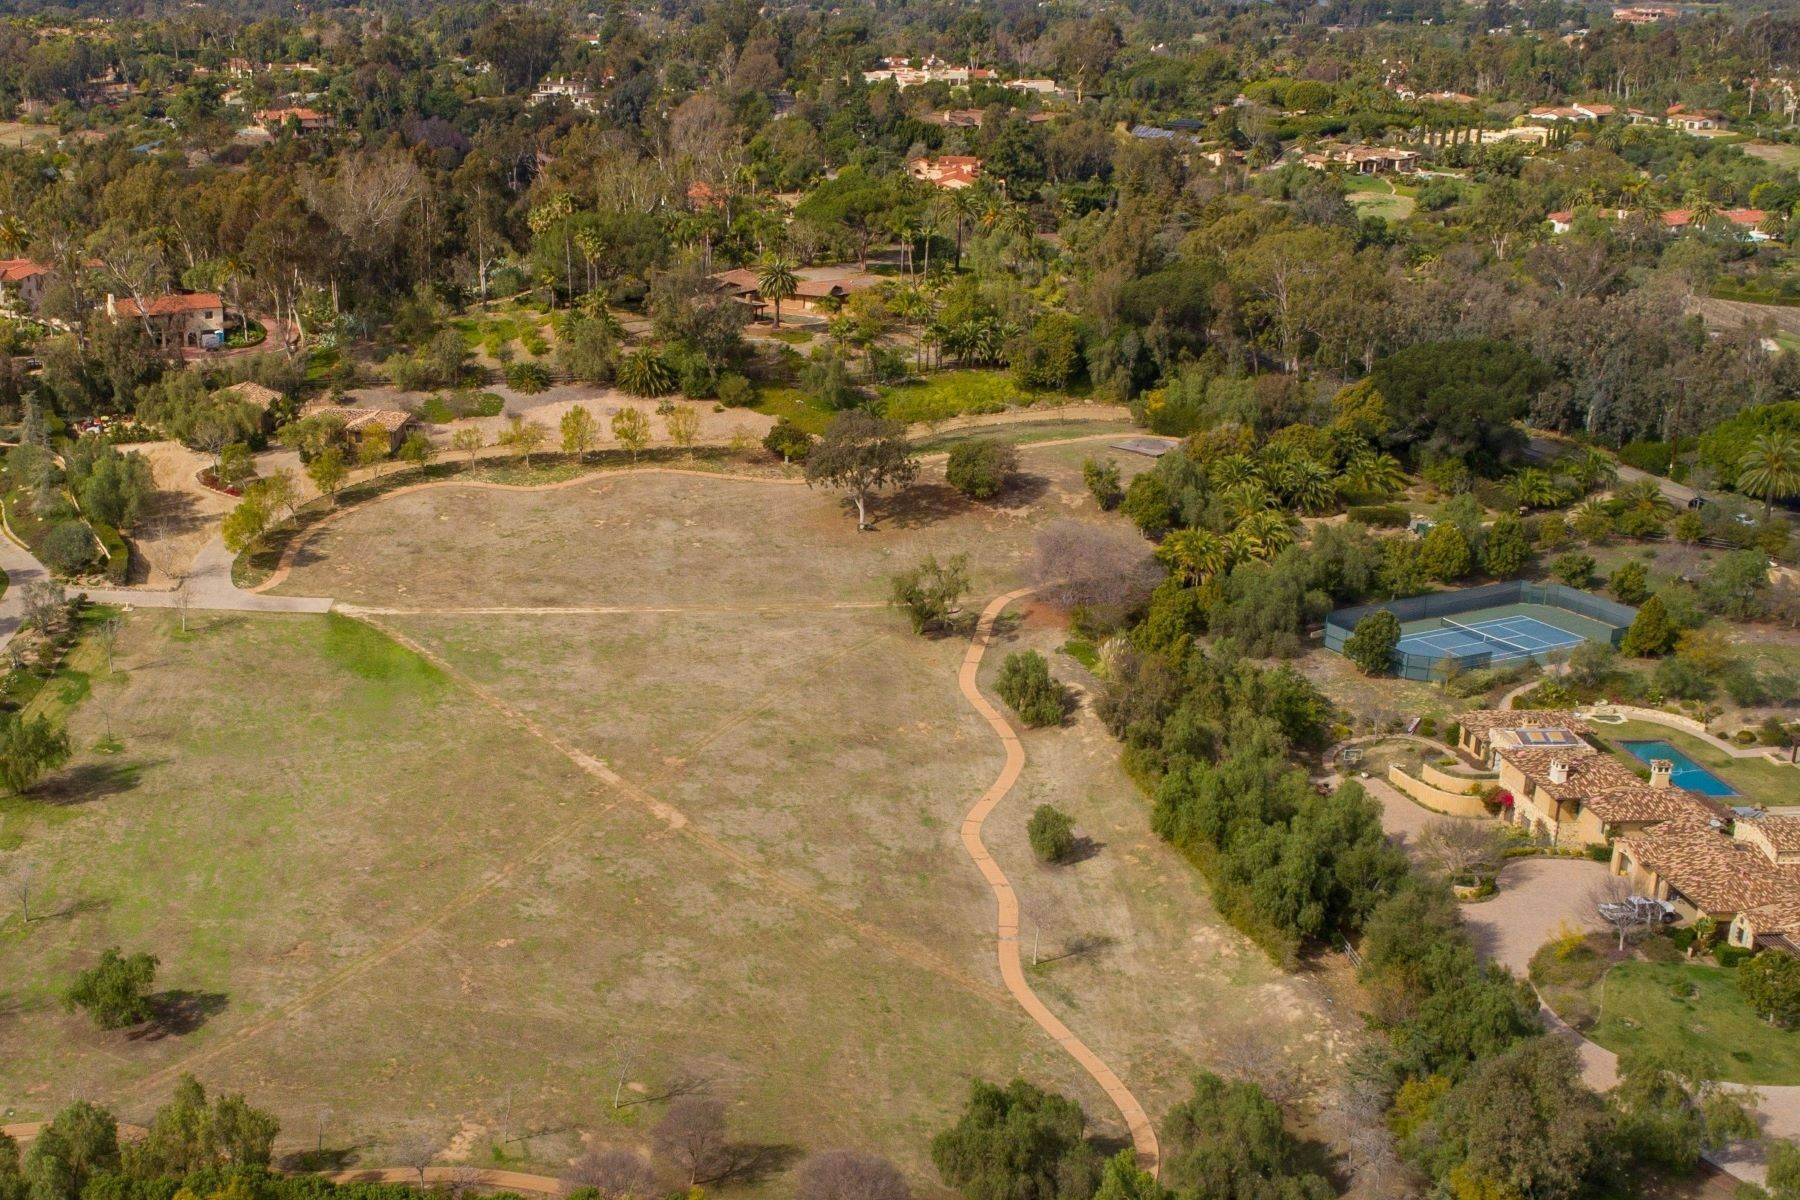 13. Land for Sale at 17048 El Mirador, Rancho Santa Fe, CA 92067 17048 El Mirador Rancho Santa Fe, California 92067 United States